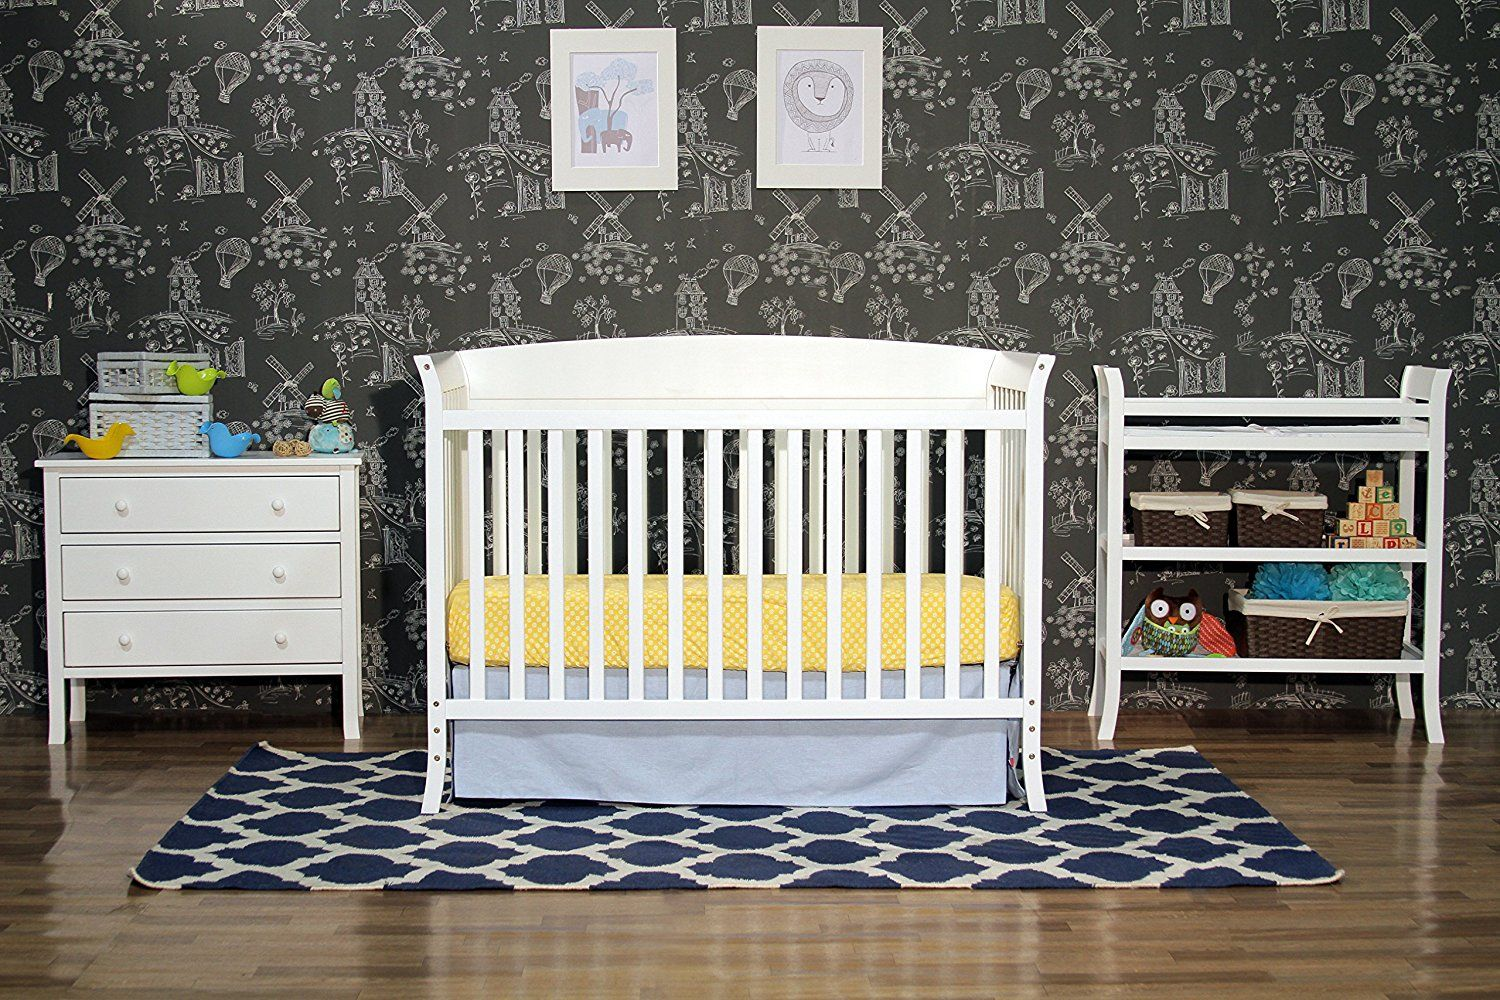 It Is Very Important To Purchase Quality Nursery Furniture Where Your Child Can Comfortably Rest And Play The Davinci Tyler 5 Piece Set White Has